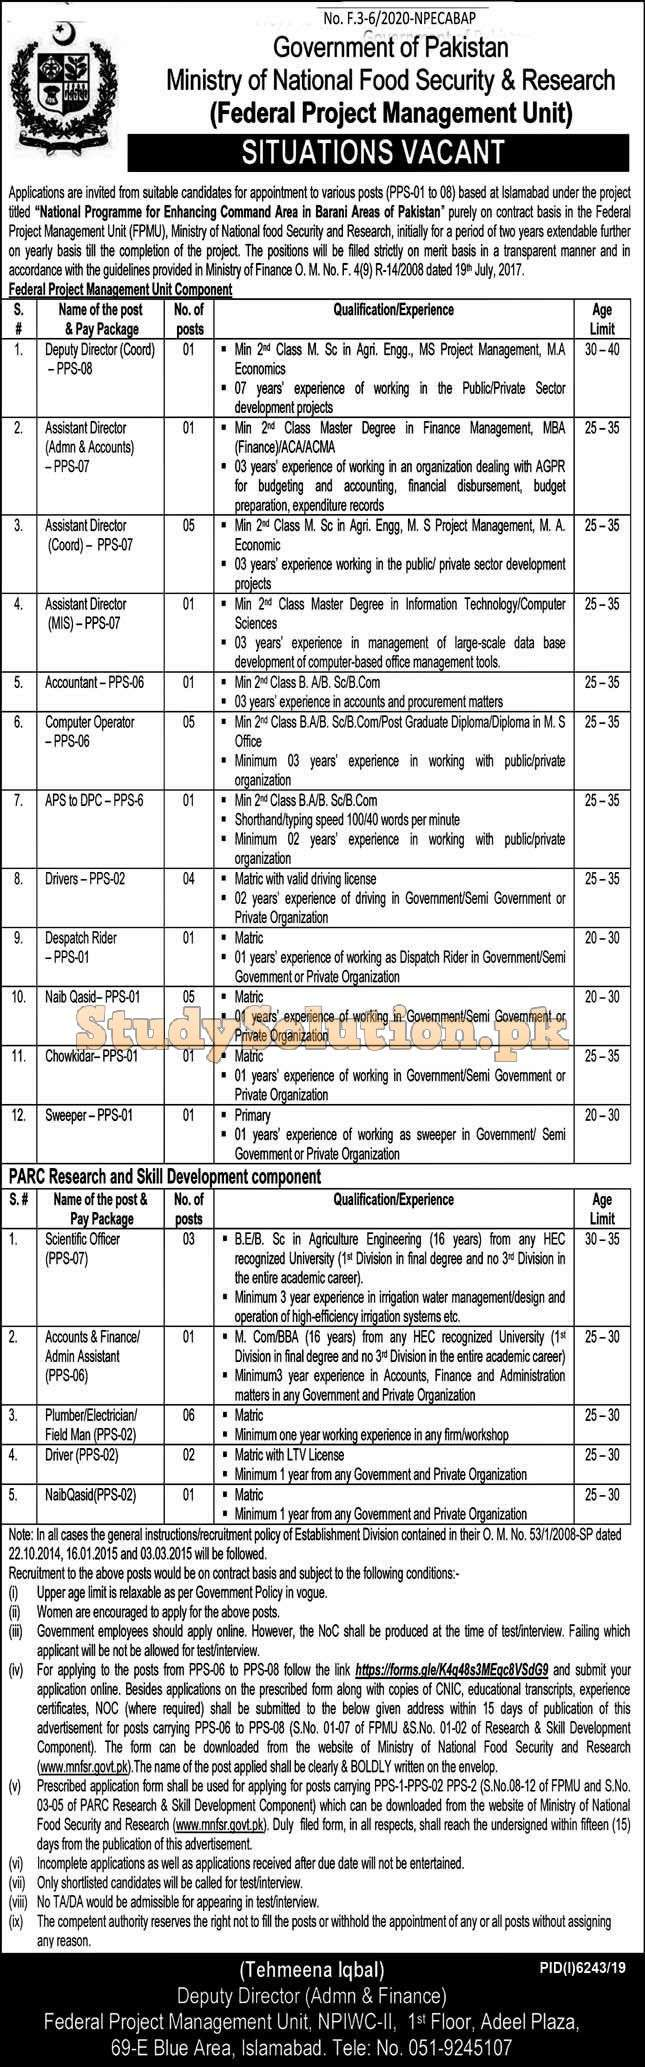 Ministry of National Food Security and Research MNFCR Jobs 2020